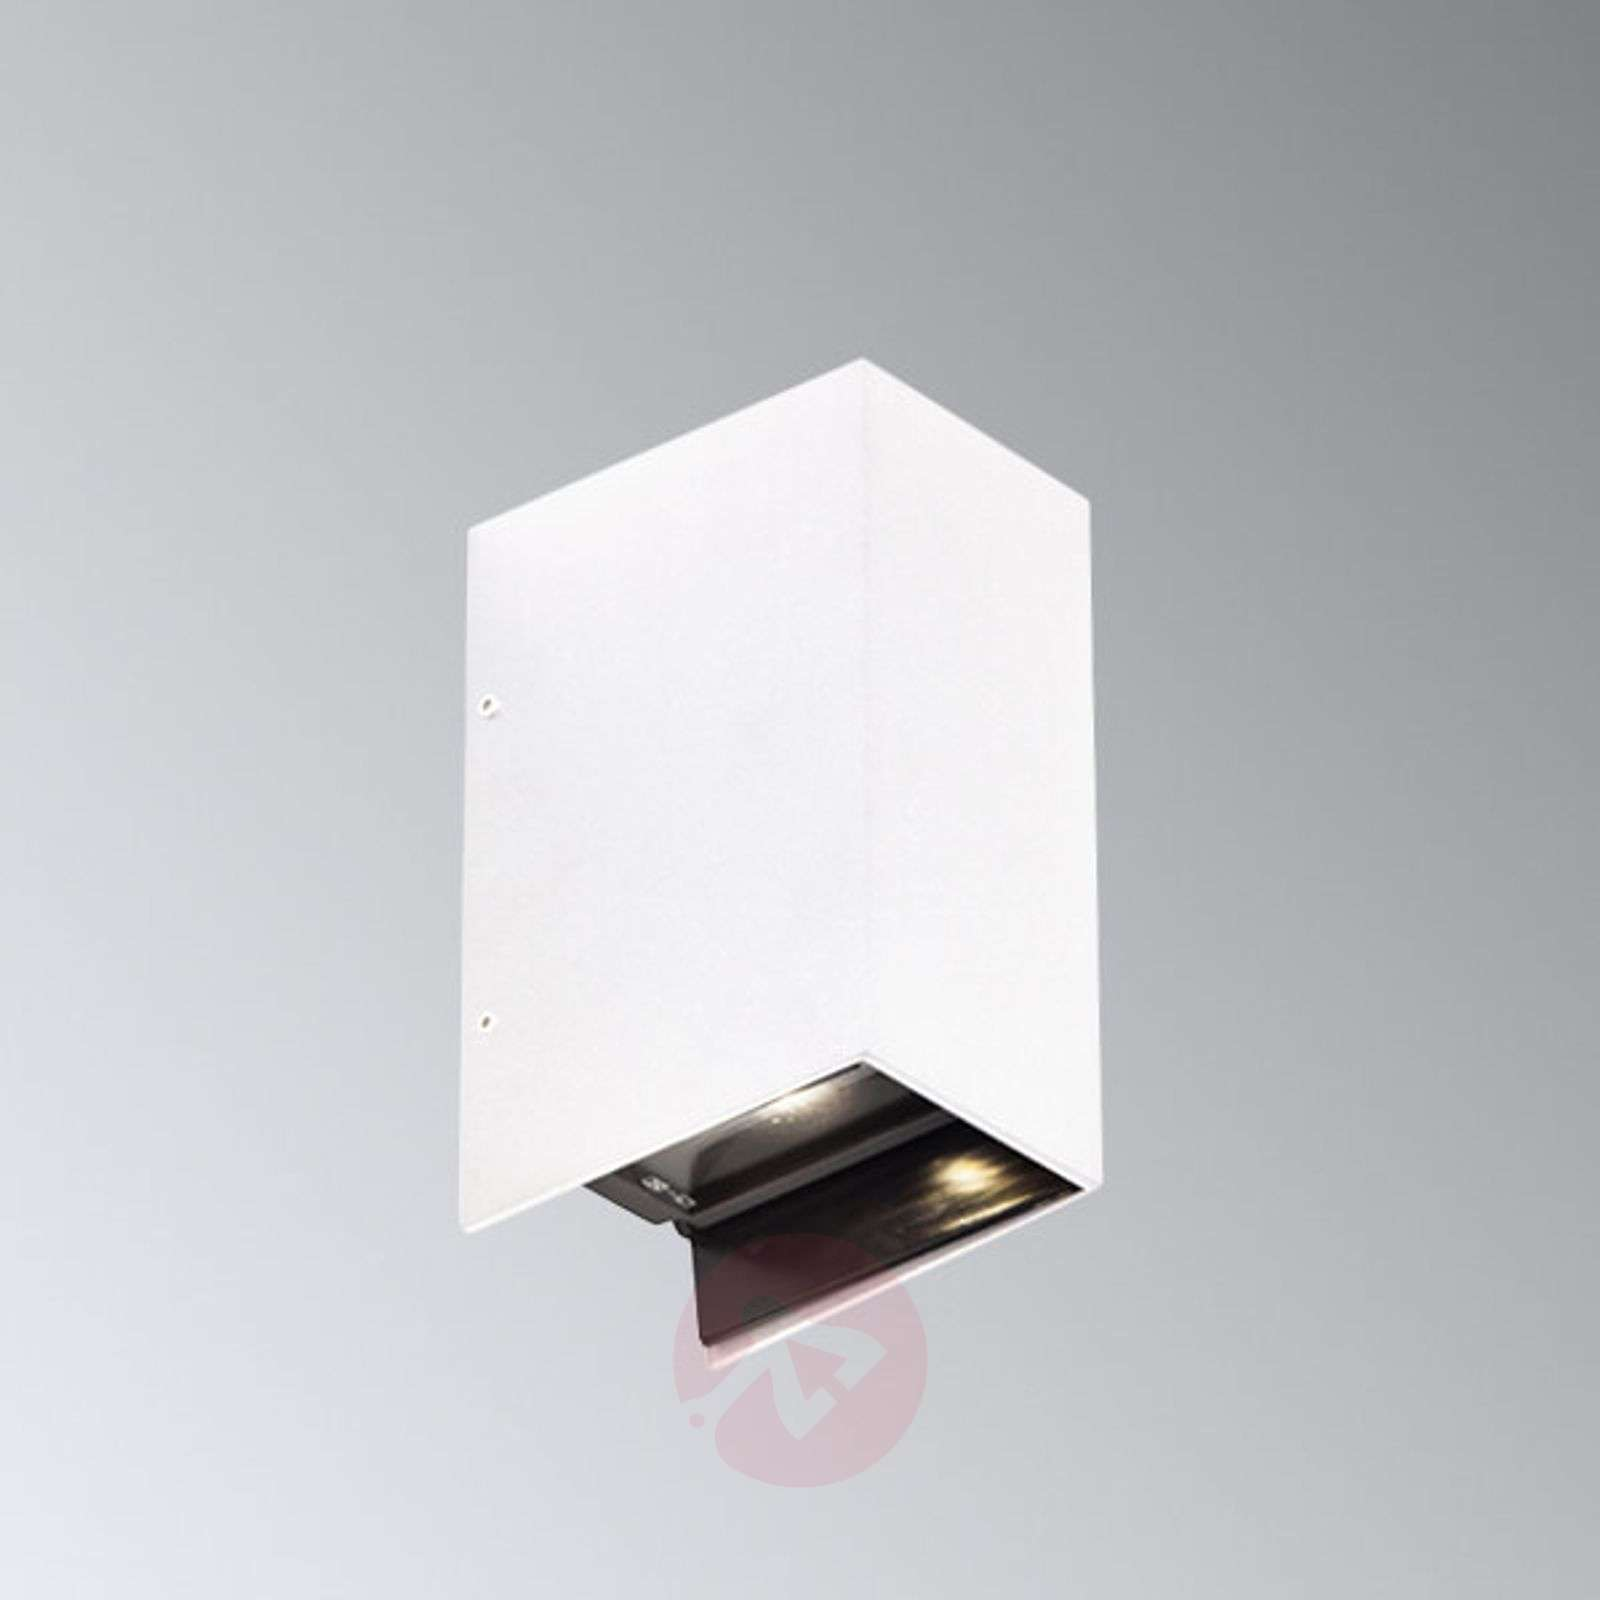 Adapt applique per esterni LED angolare a 2 luci-3057135-01